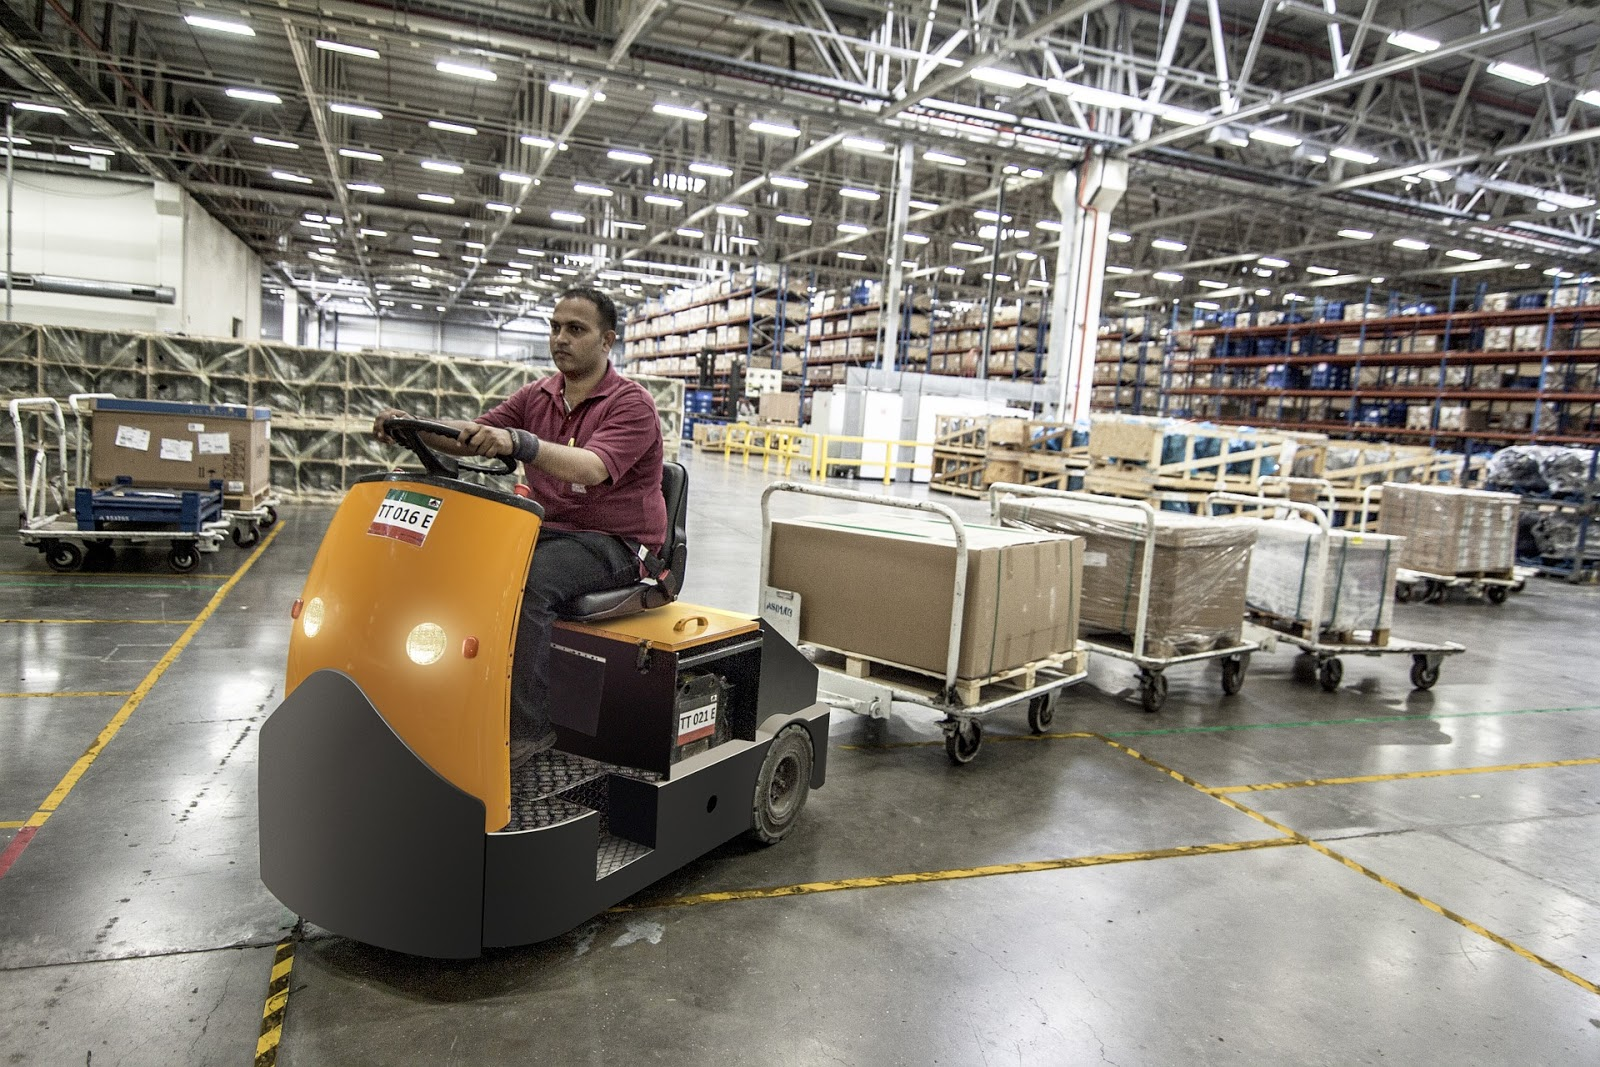 forklift-warehouse-machine-worker-835343/finding dropshipping suppliers